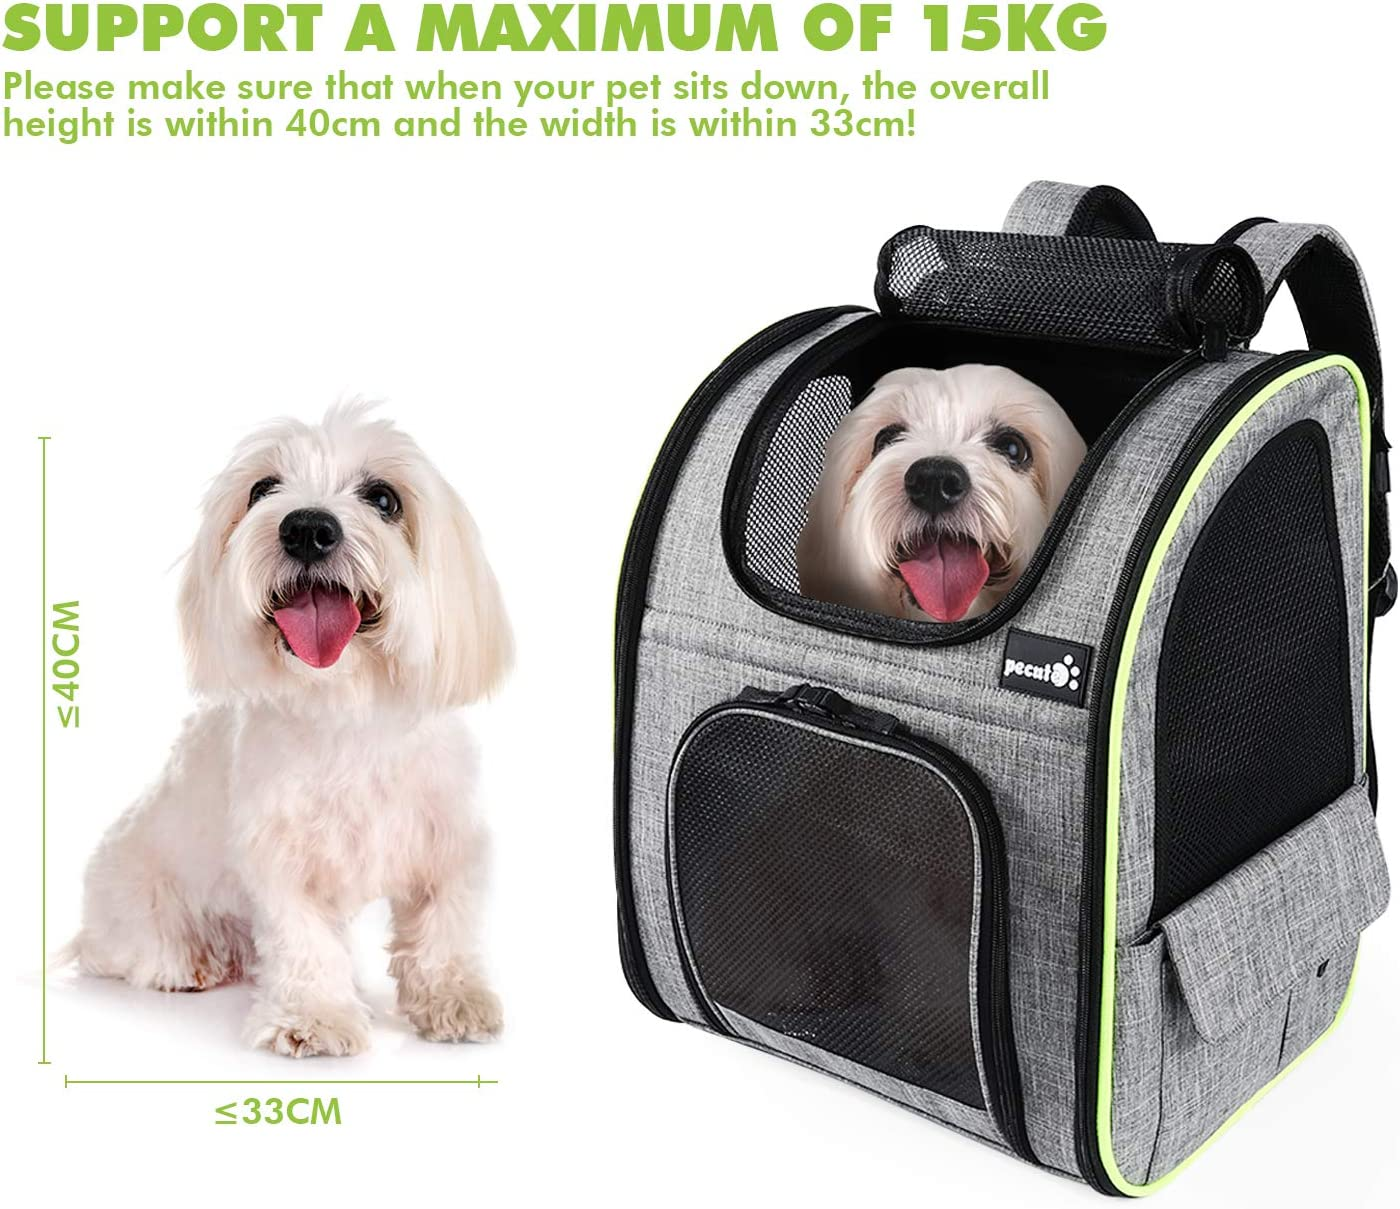 Pecute Pet Carrier Backpack Pet Backpack Bag for Hiking Travel Camping Outdoor Hold Pets Up to 18 Lbs Dog Carrier Backpack Expandable with Breathable Mesh for Small Dogs Cats Puppies